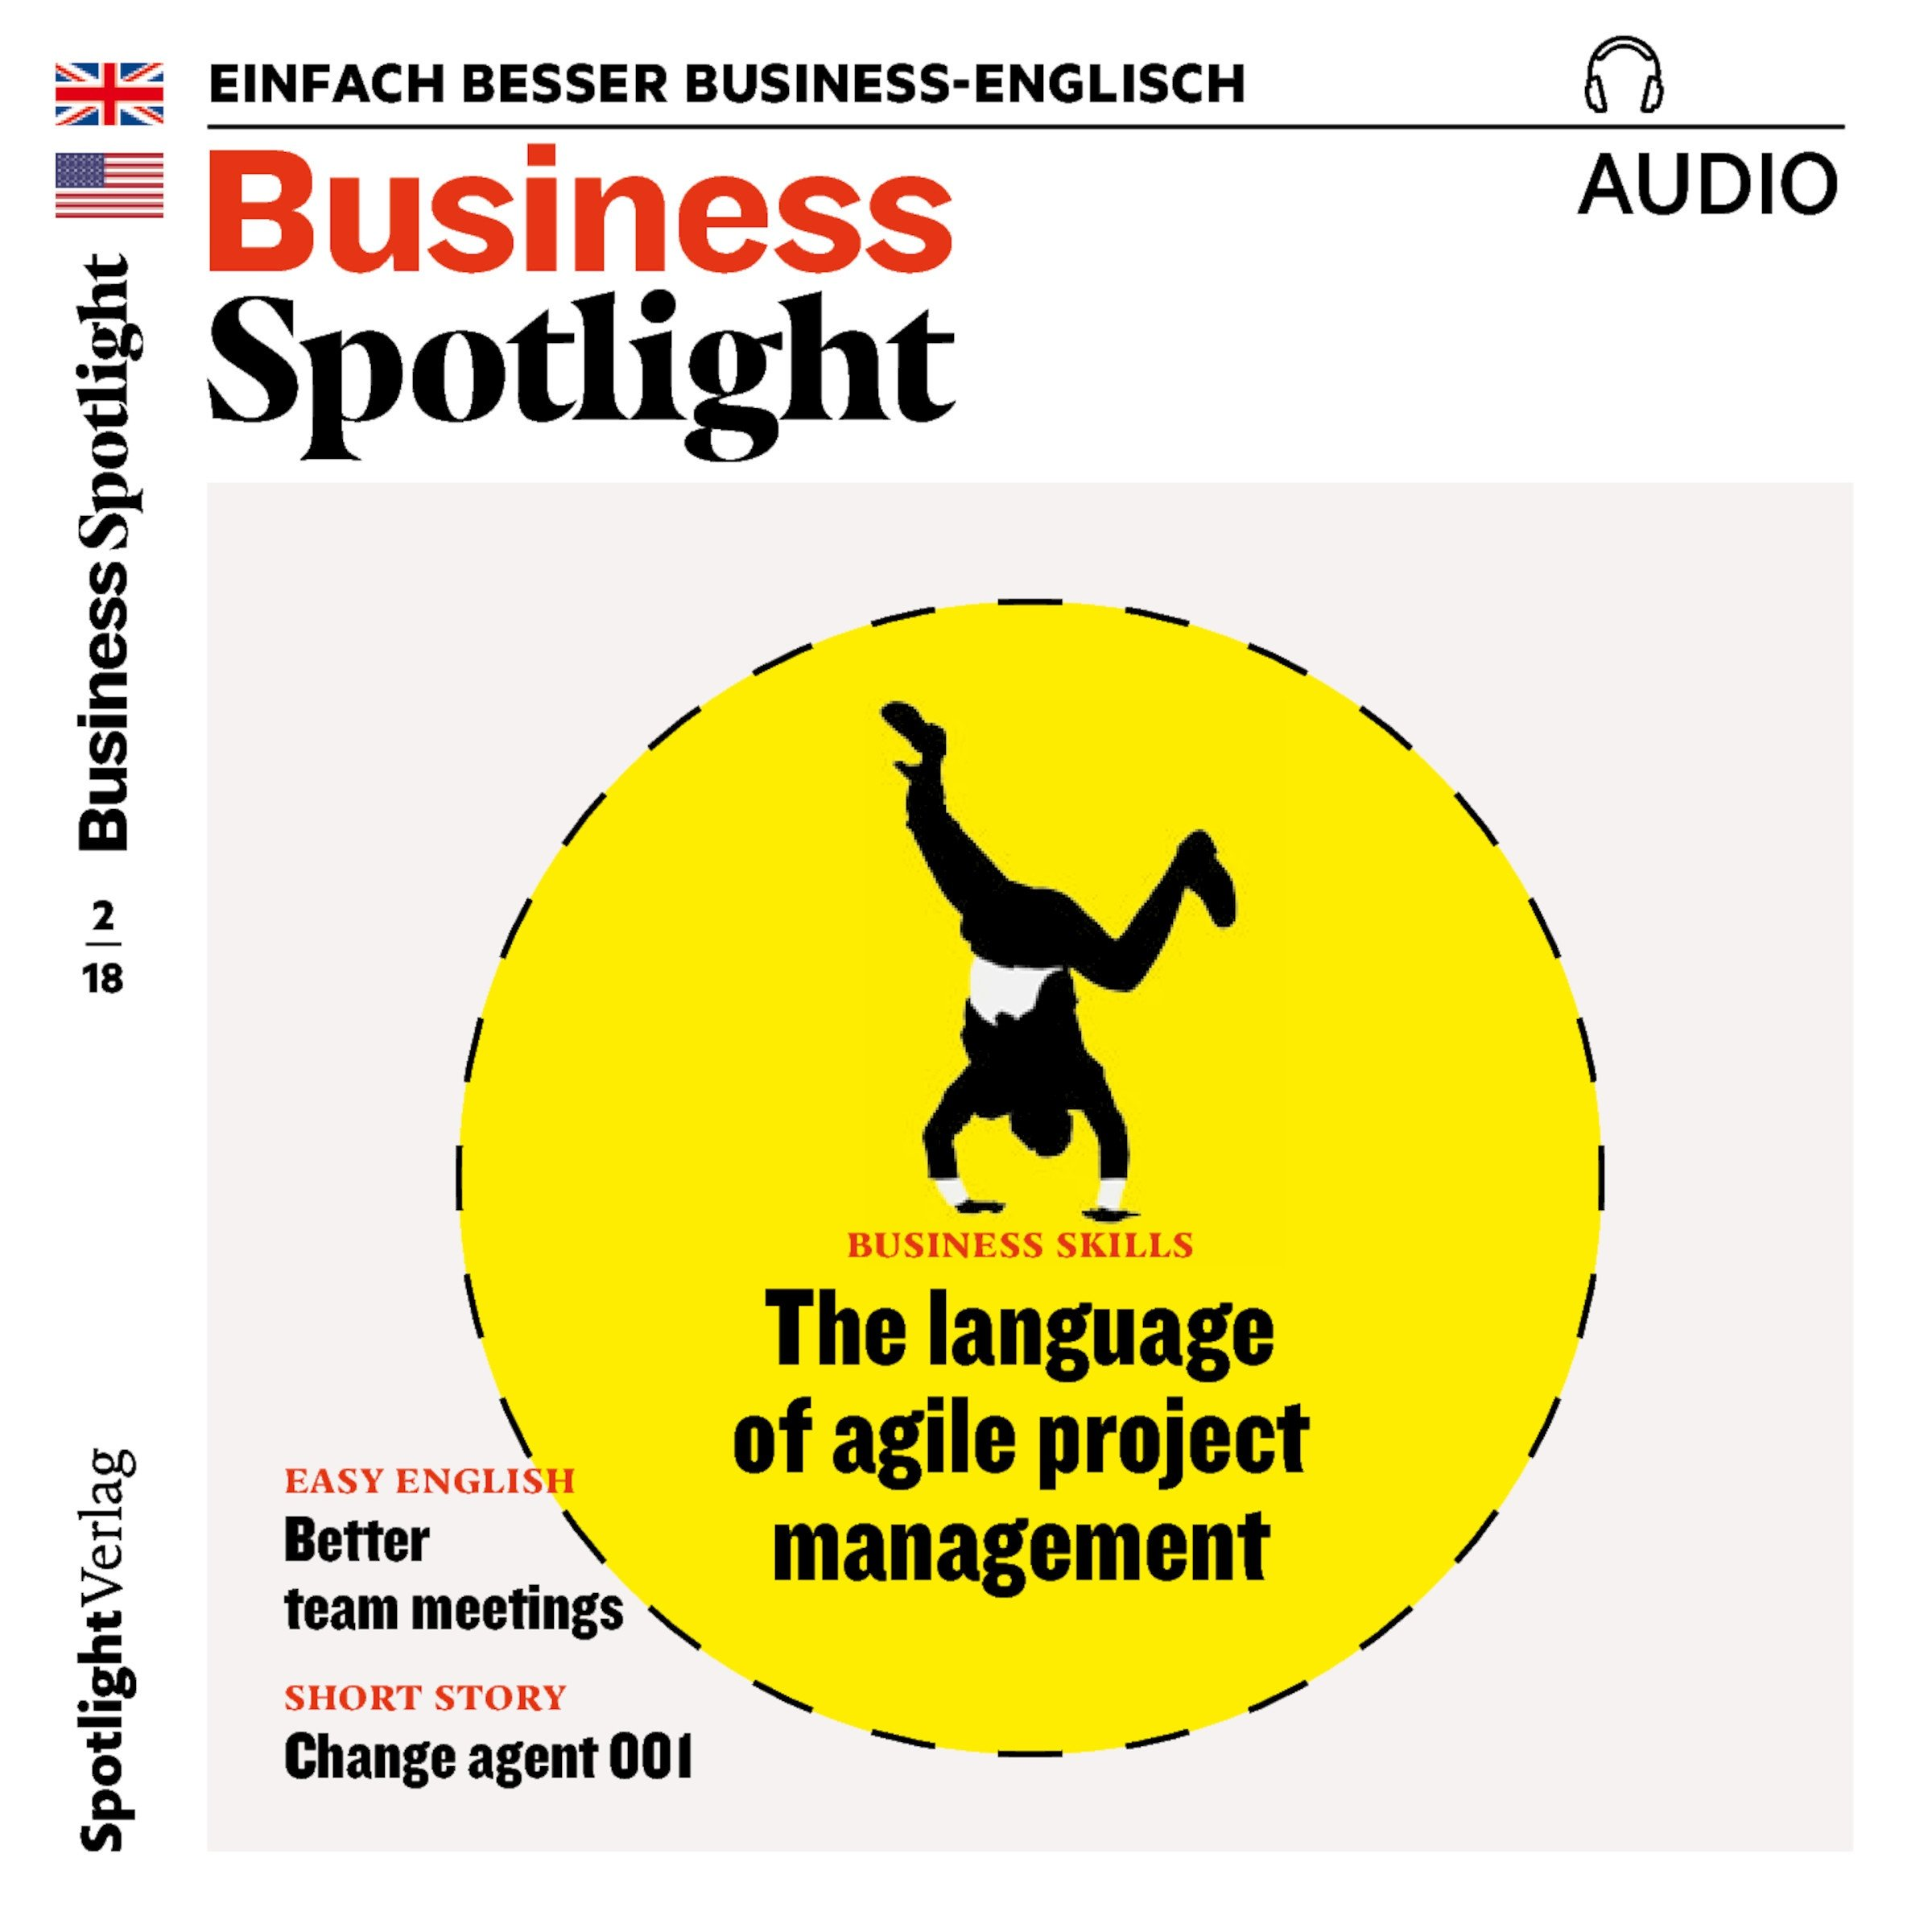 Business Spotlight Audio - Agile project management. 2/2018: Business-Englisch lernen - Agiles Projektmanagement by Spotlight Verlag GmbH